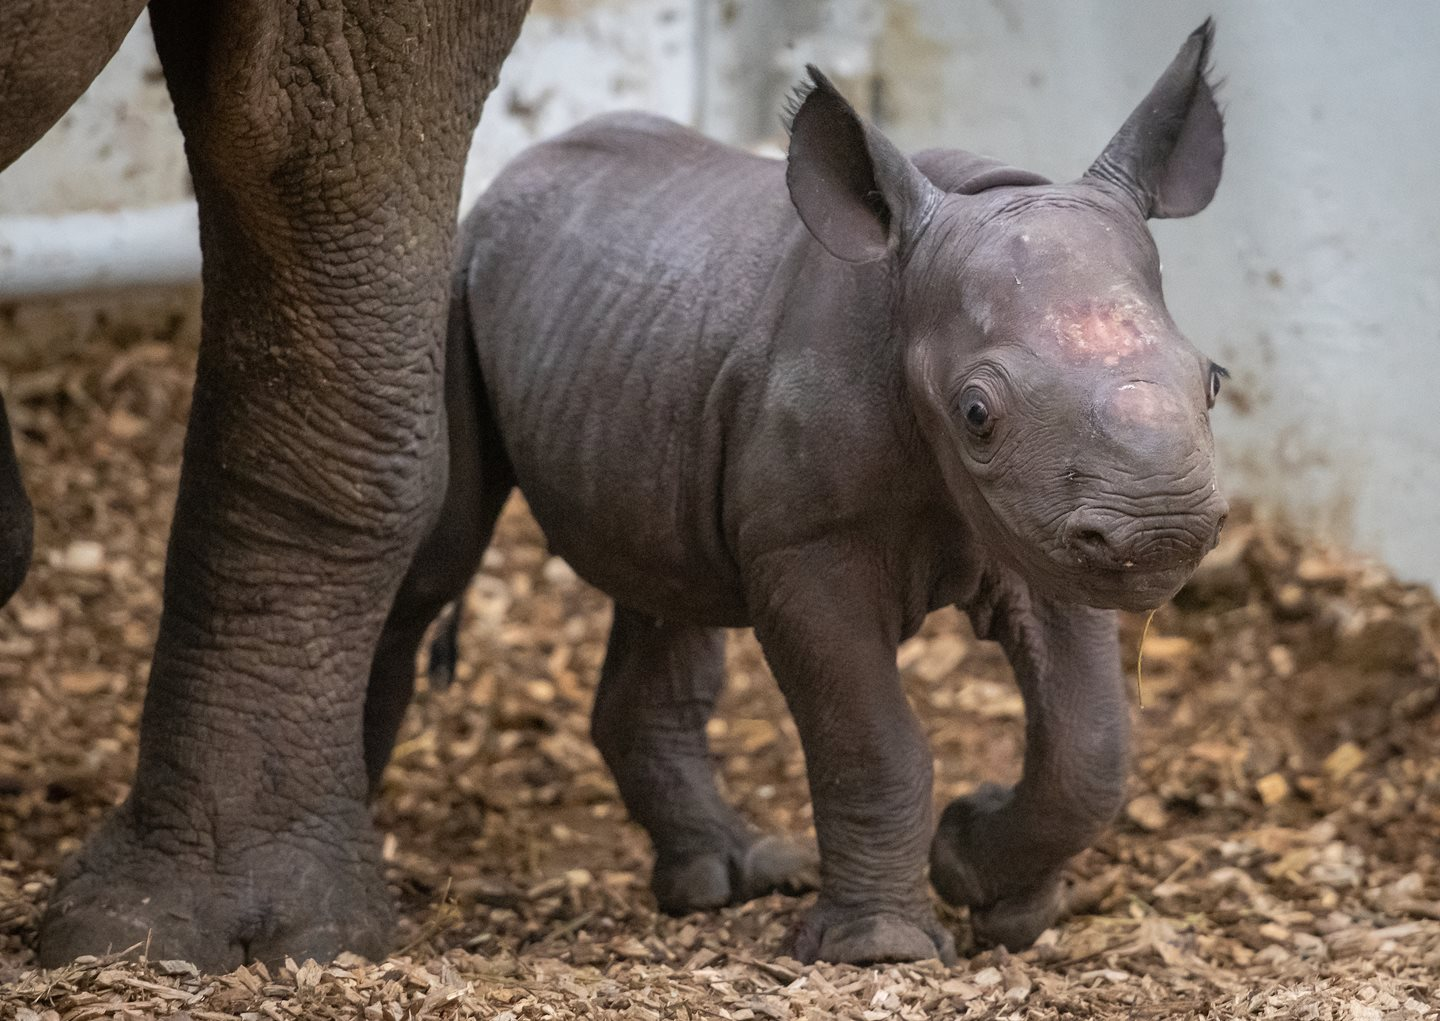 Cleveland Metroparks Zoo Announces Birth of Eastern Black Rhino Calf